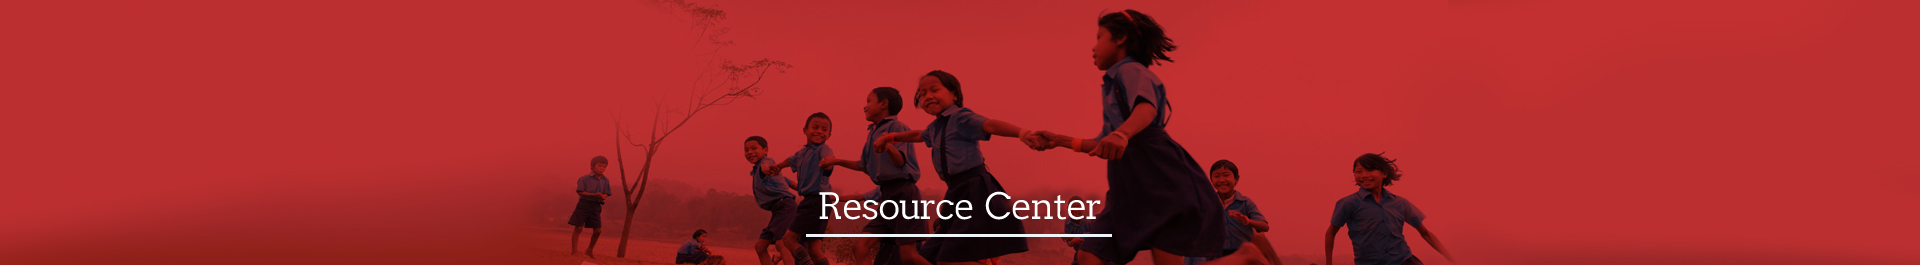 header_resource_center